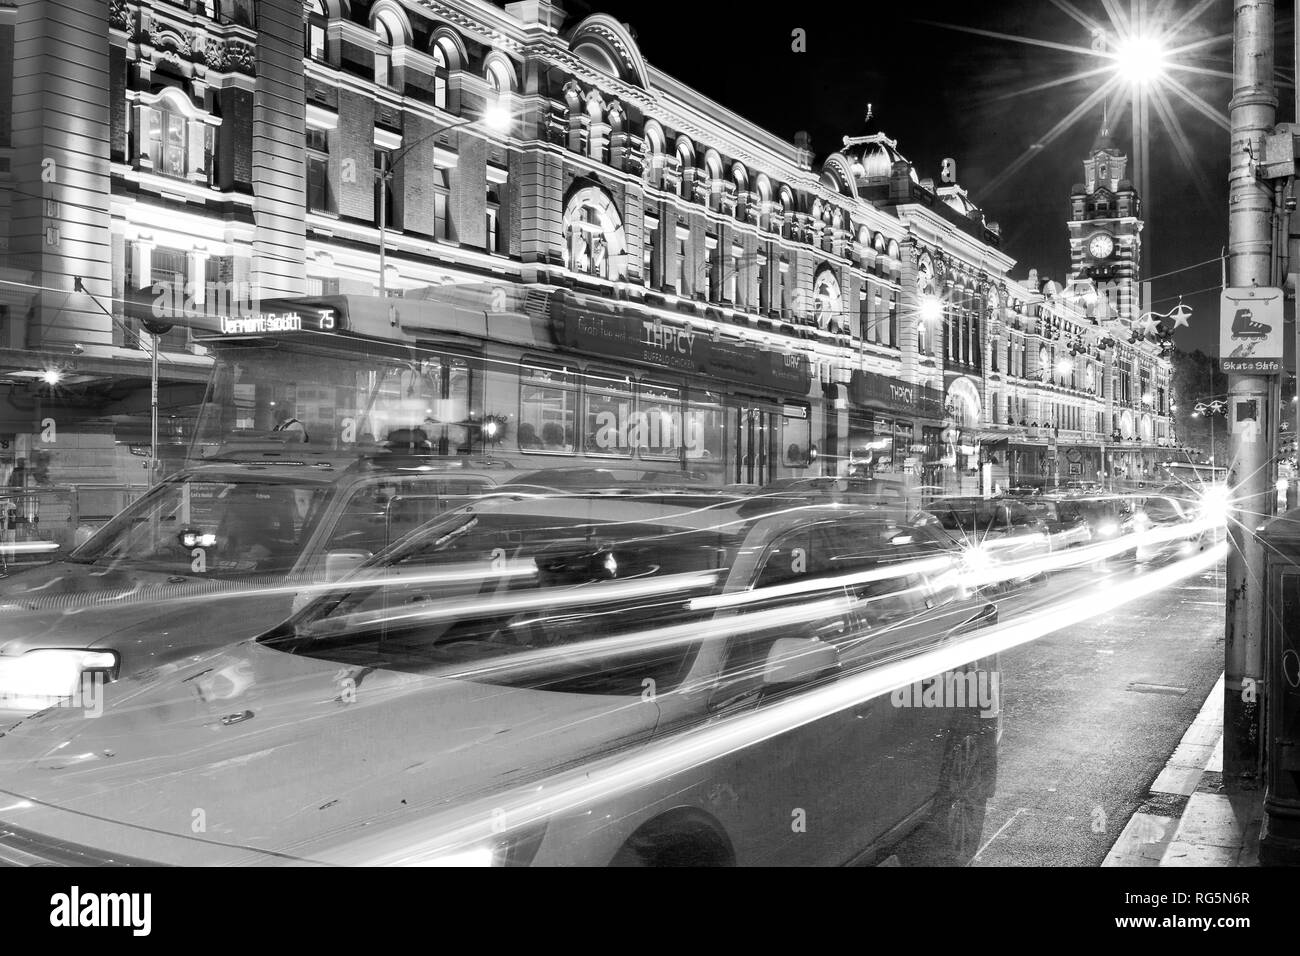 Flinders Street Station is a famous landmark and tourist attraction in Melbourne, Victoria, Australia. Shown with tram and vehicle traffic on Flinders Stock Photo